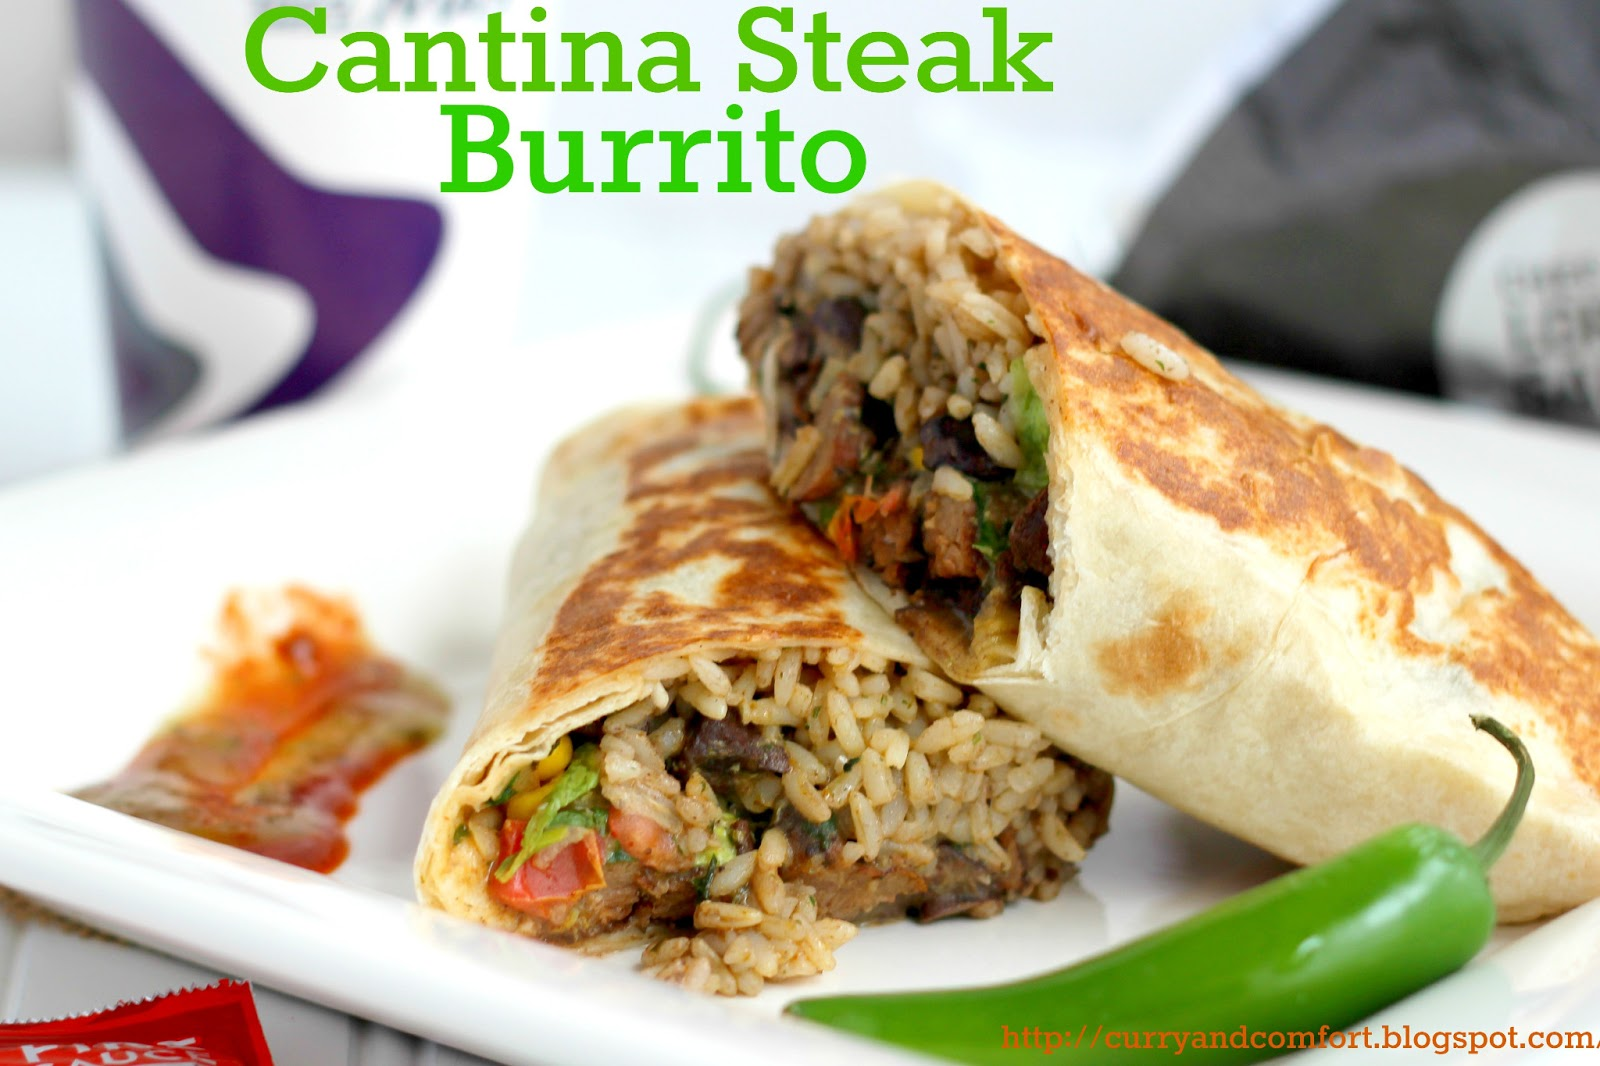 Taco Bell Kitchen kitchen simmer: taco bell's cantina steak burrito review